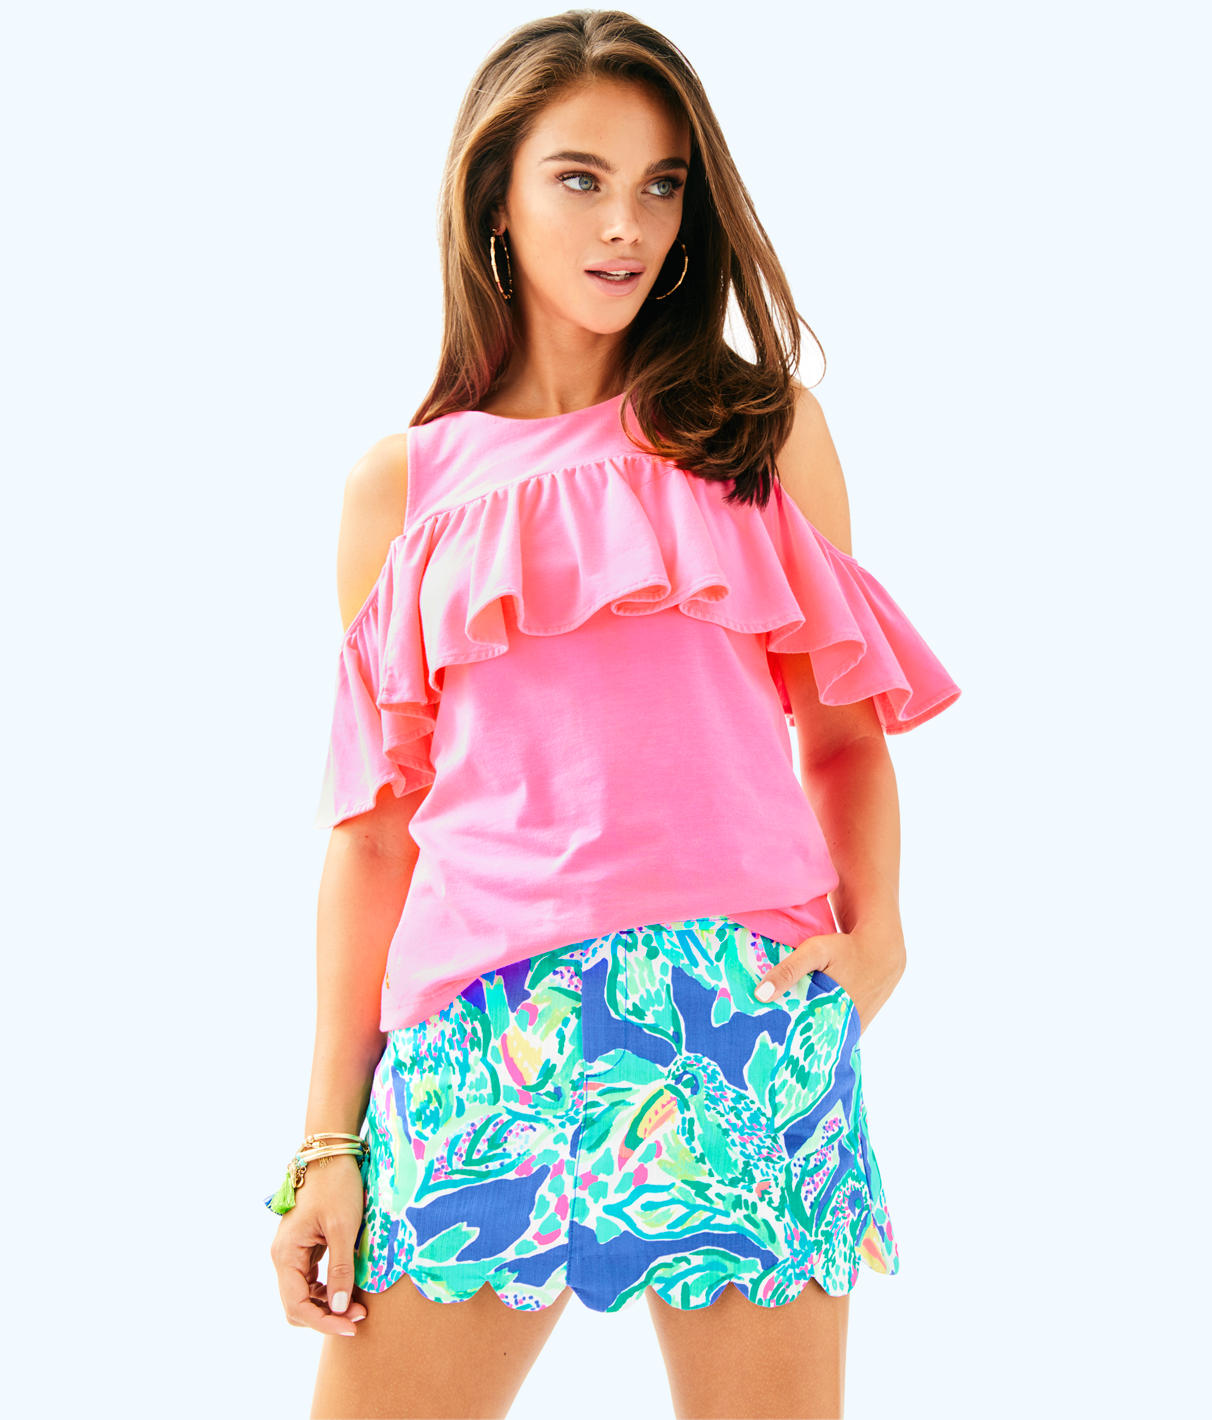 Lilly Pulitzer Lilly Pulitzer Womens Lyra Top